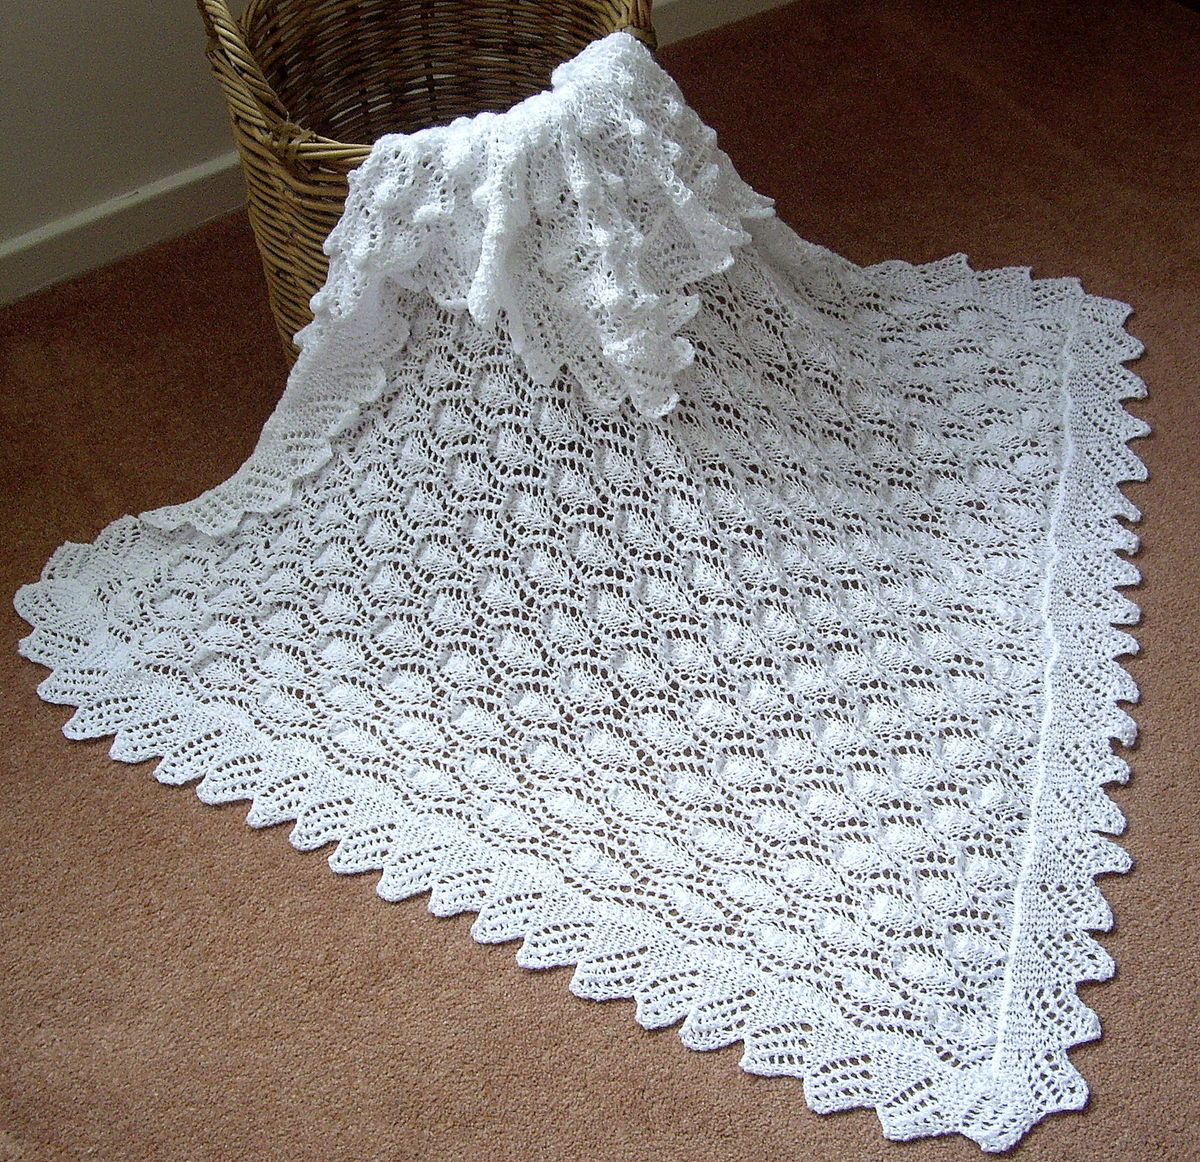 Knitting Pattern For Christening Shawl Free : Beautiful Baby Shawl Blanket Hand Knitted in A Lace Medallion Pattern baby ...